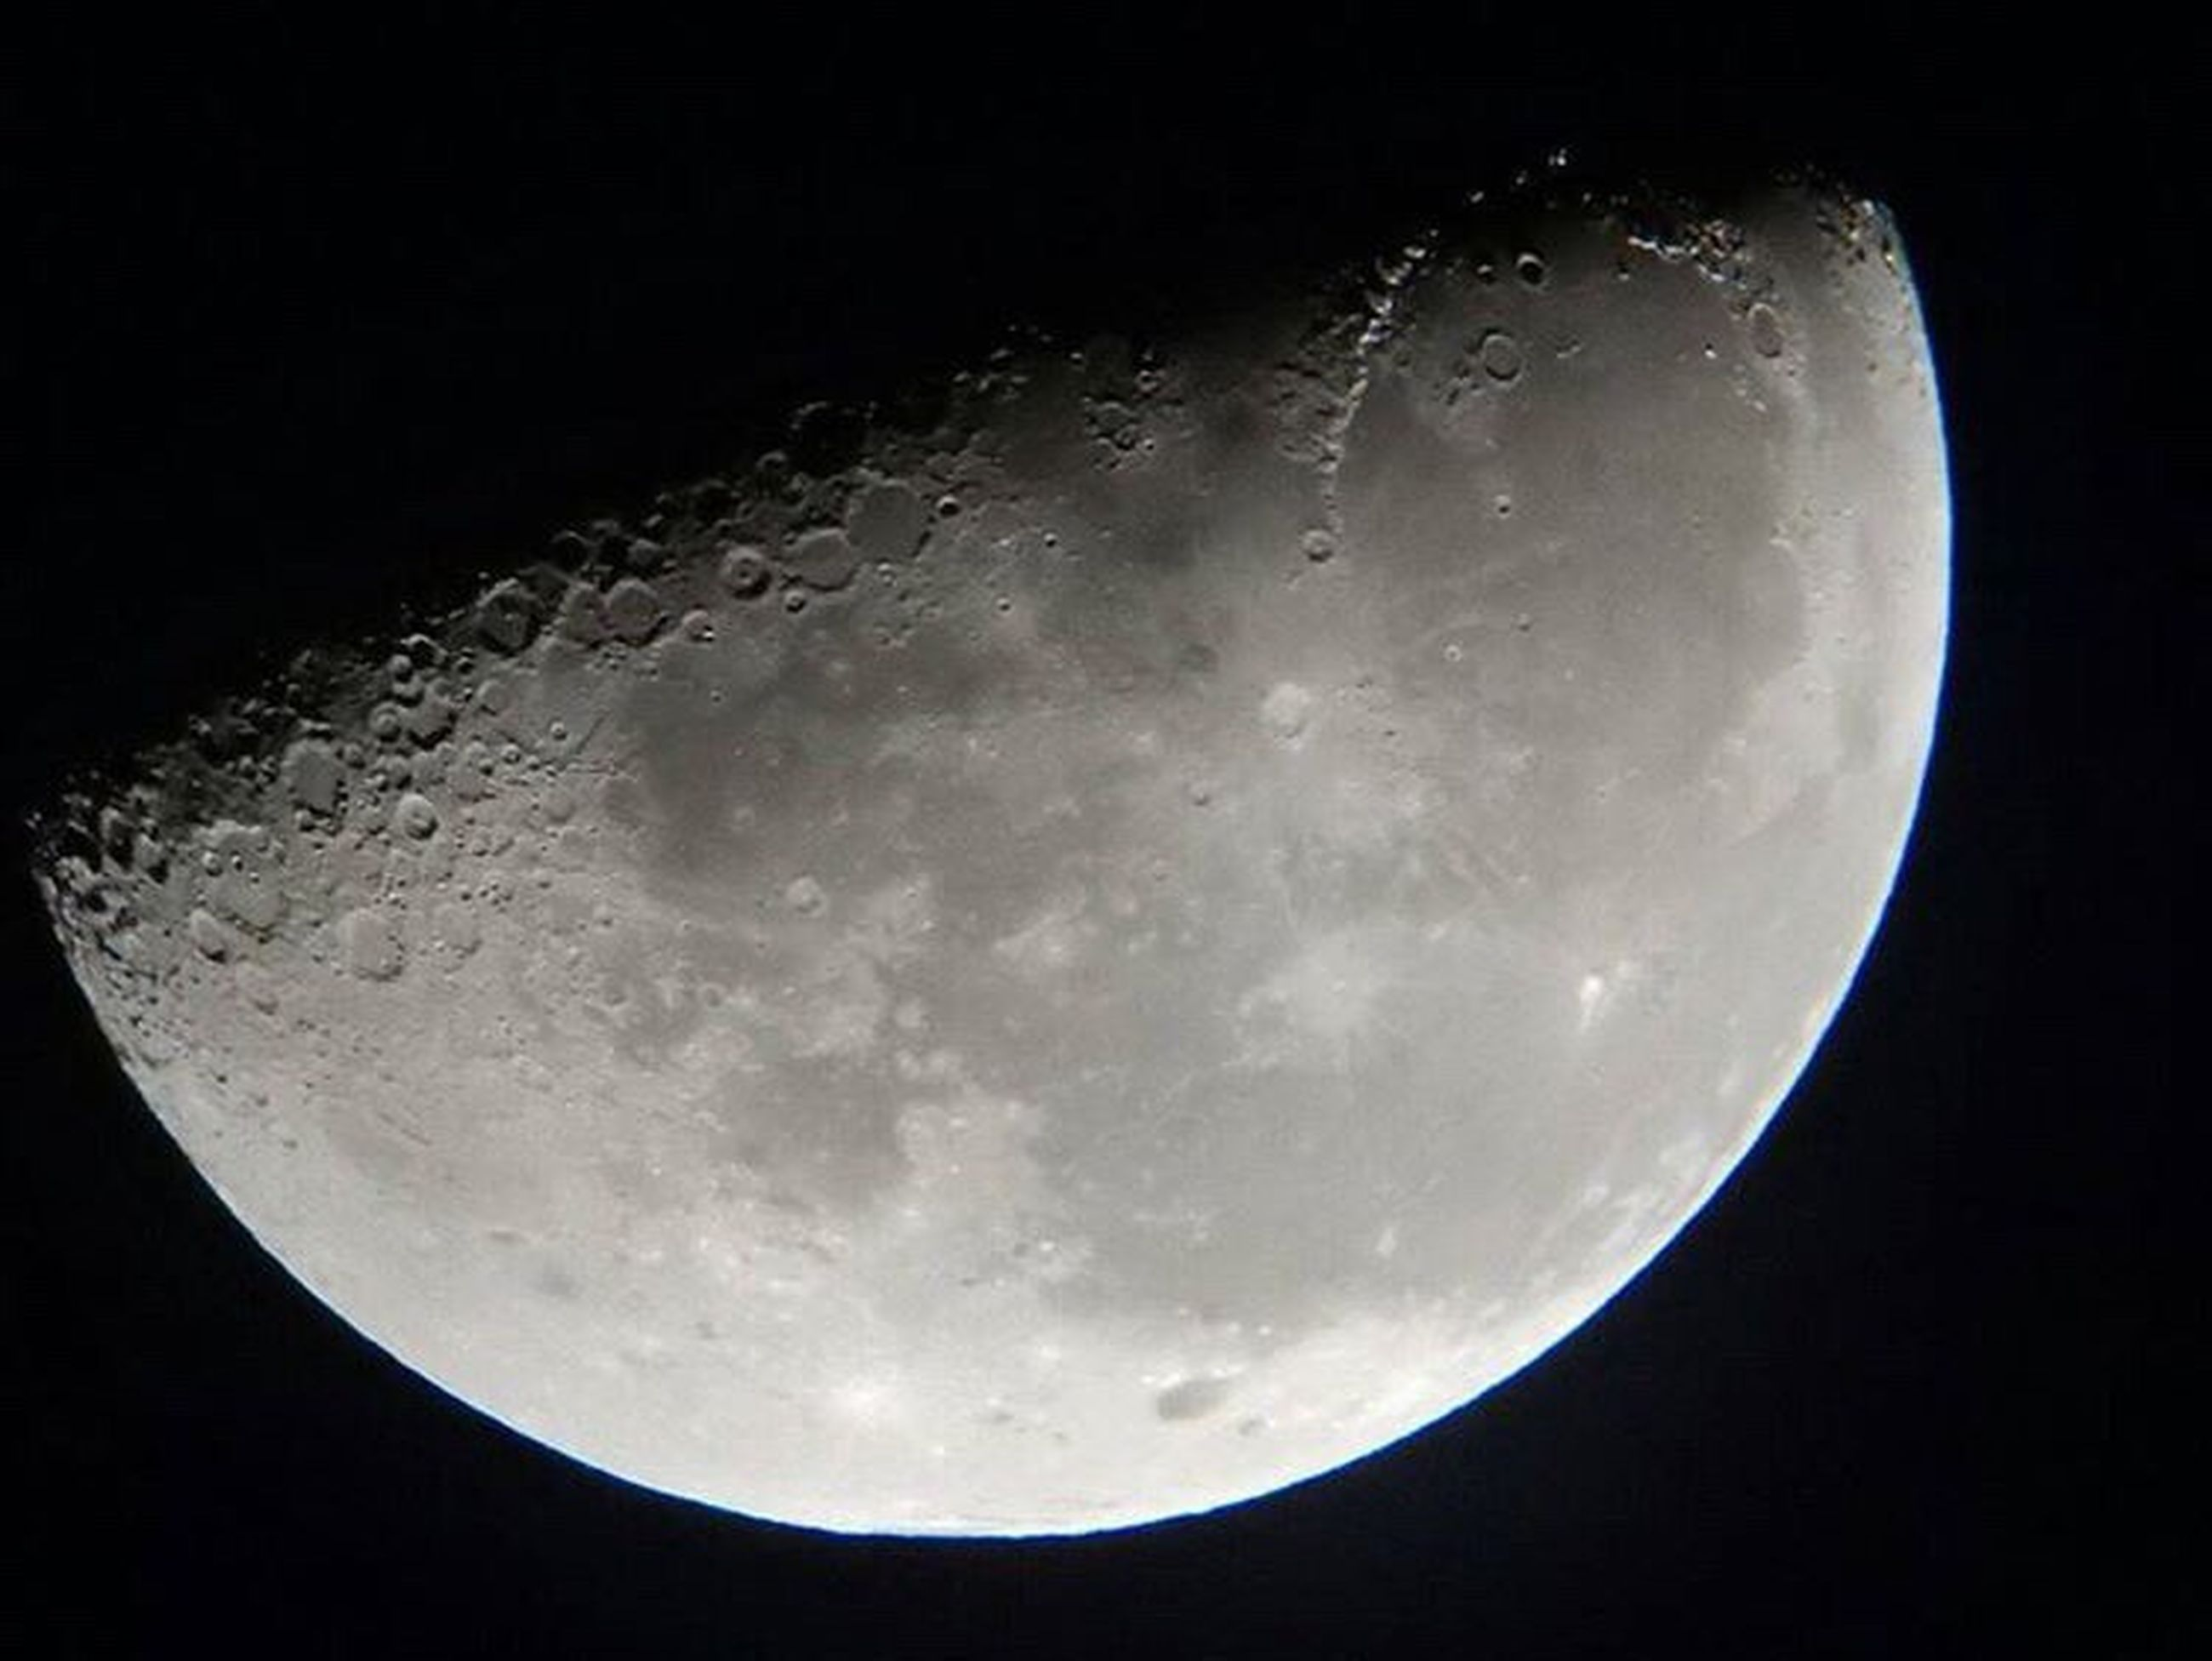 astronomy, moon, planetary moon, night, sky, moon surface, full moon, low angle view, space exploration, circle, beauty in nature, nature, sphere, scenics, tranquil scene, tranquility, discovery, majestic, space, dark